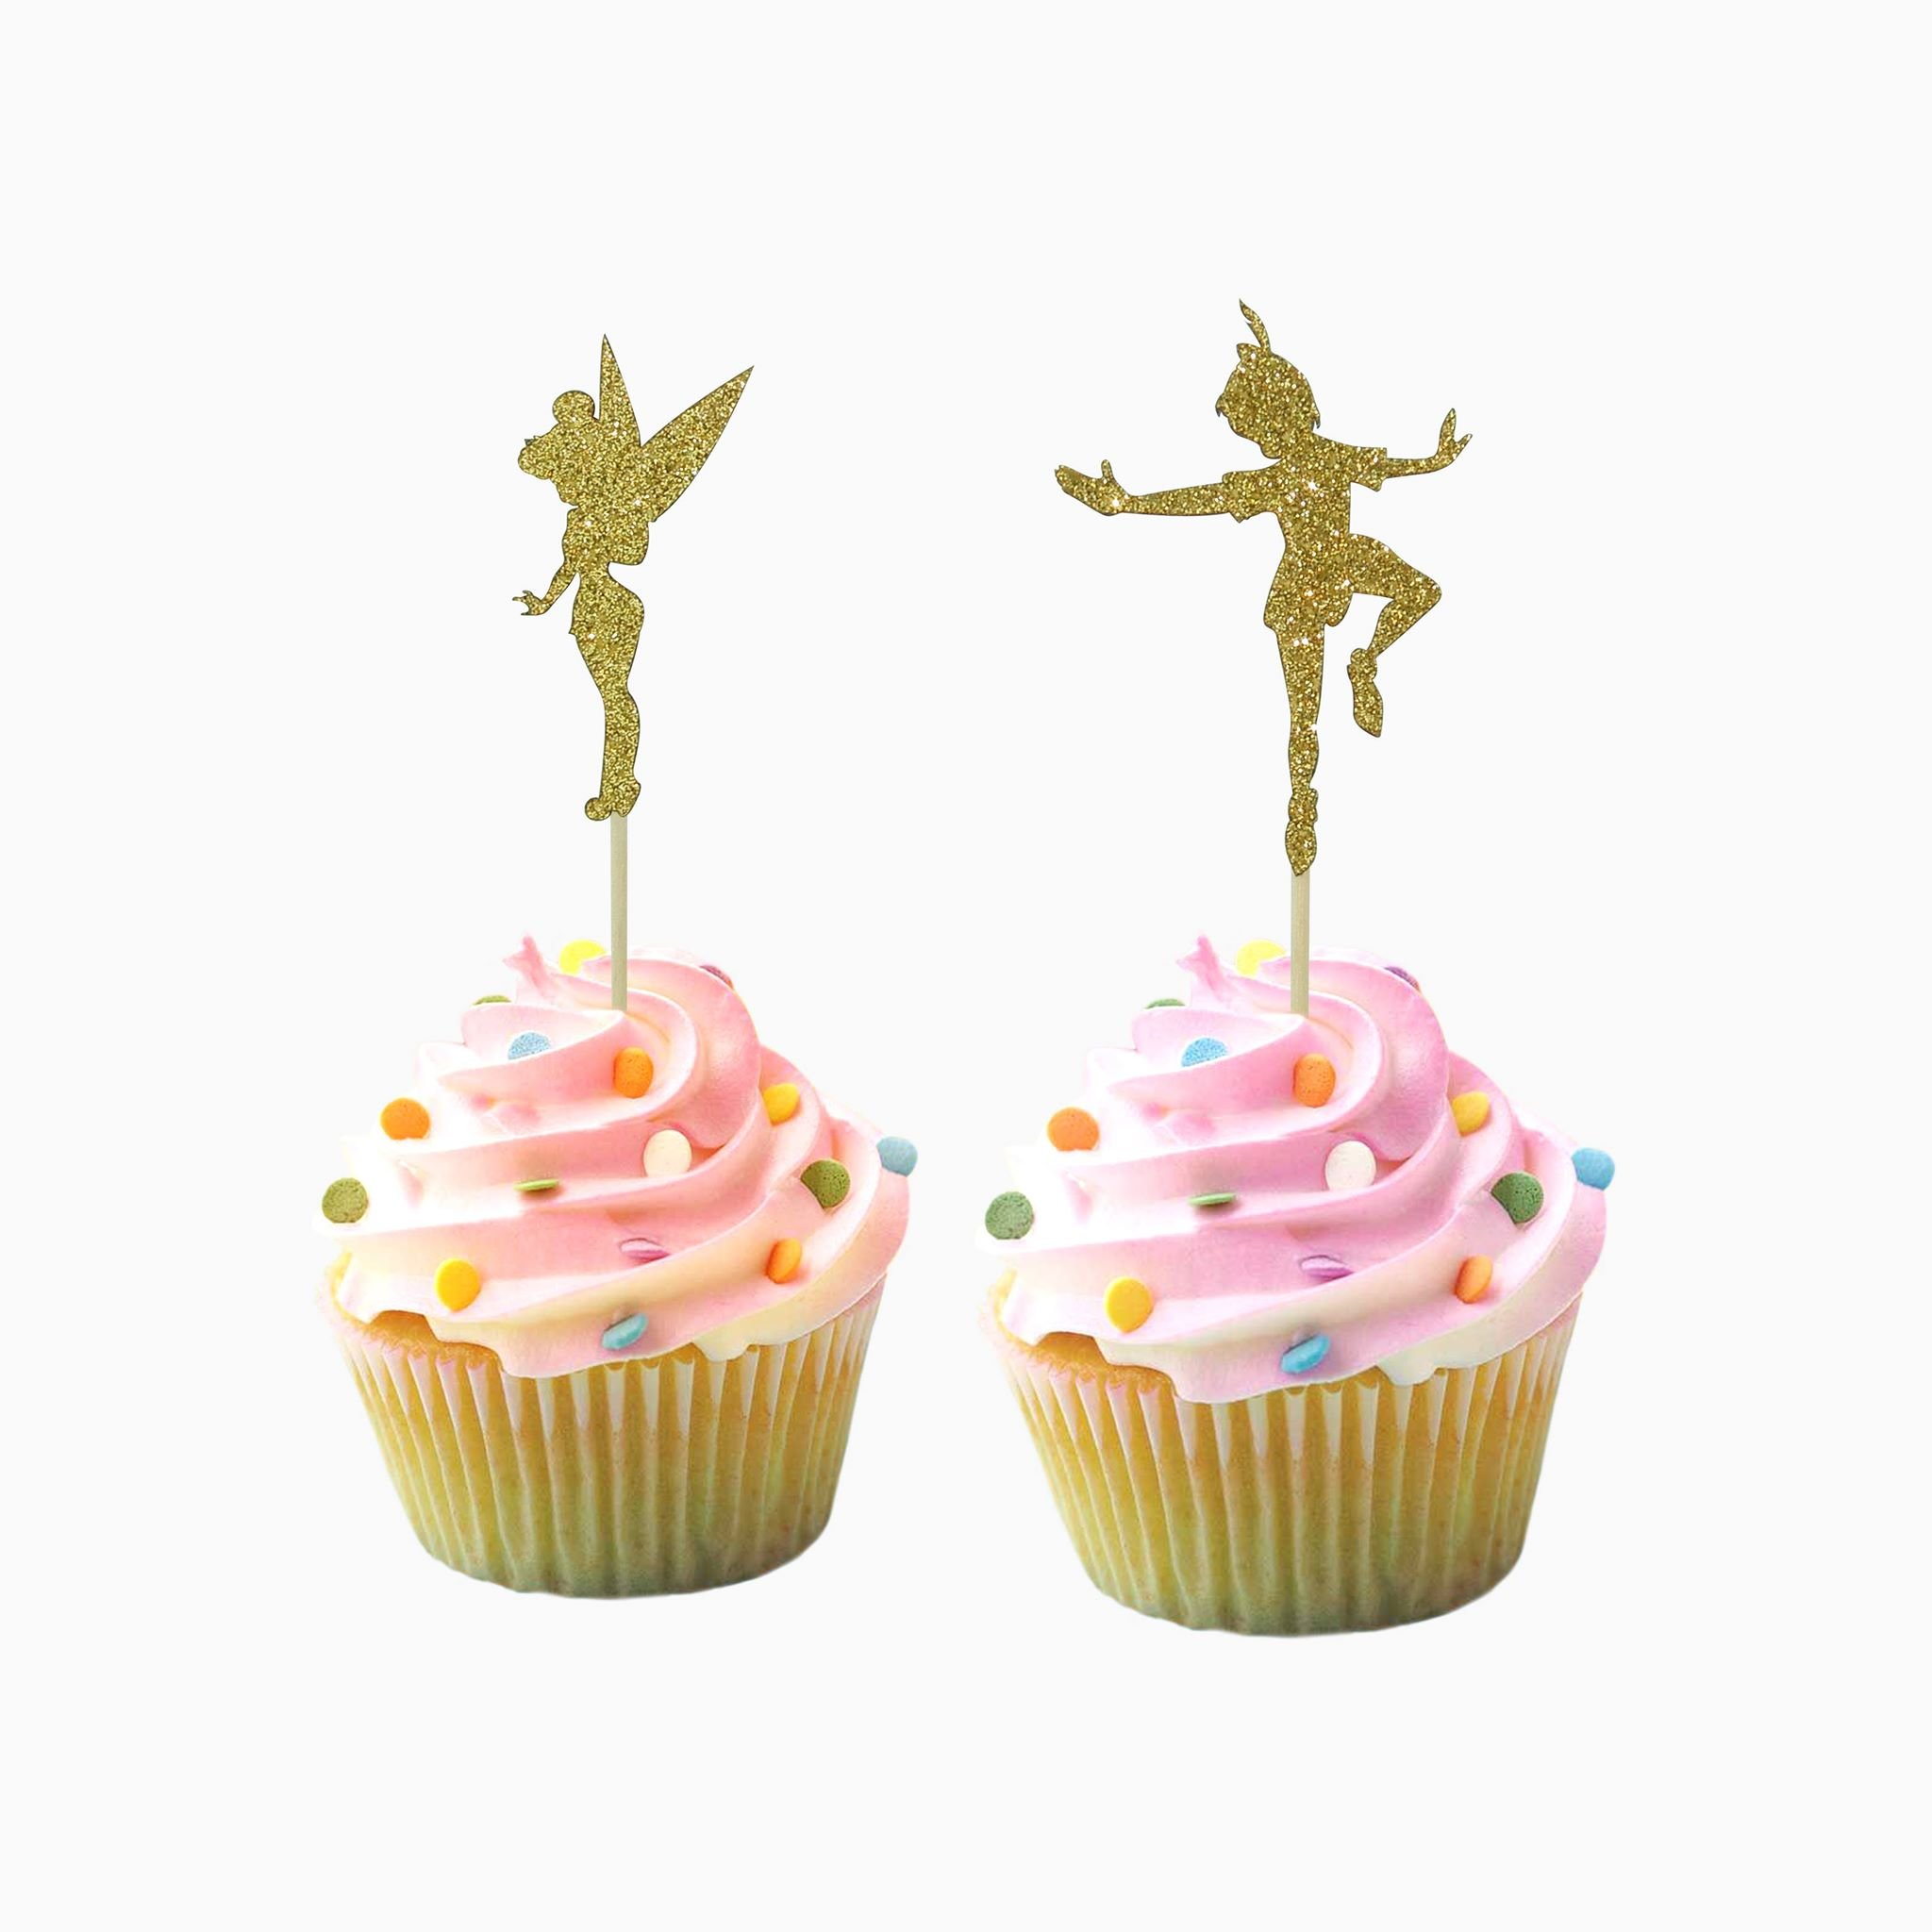 Peter Pan Tinker Bell inspired Party Wedding Birthday Cupcake Topper cardstock Color Gold 12 pc Pack Decoration